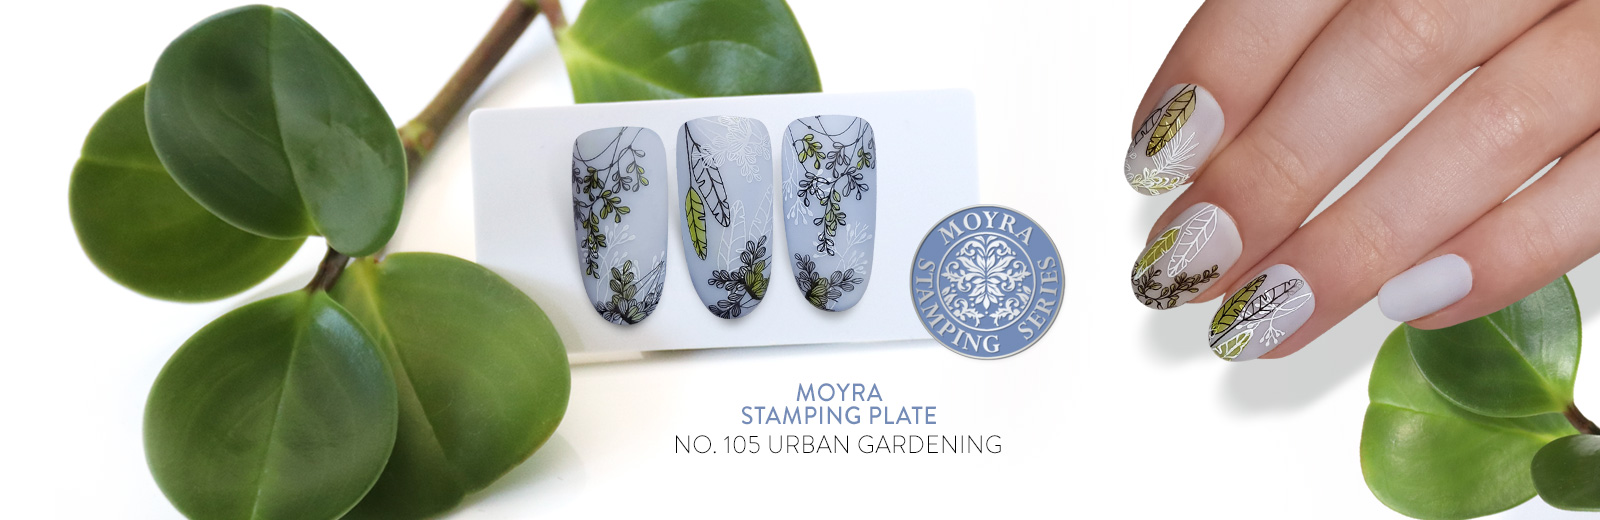 New stamping plate from Moyra! No. 105 Urban Gardening